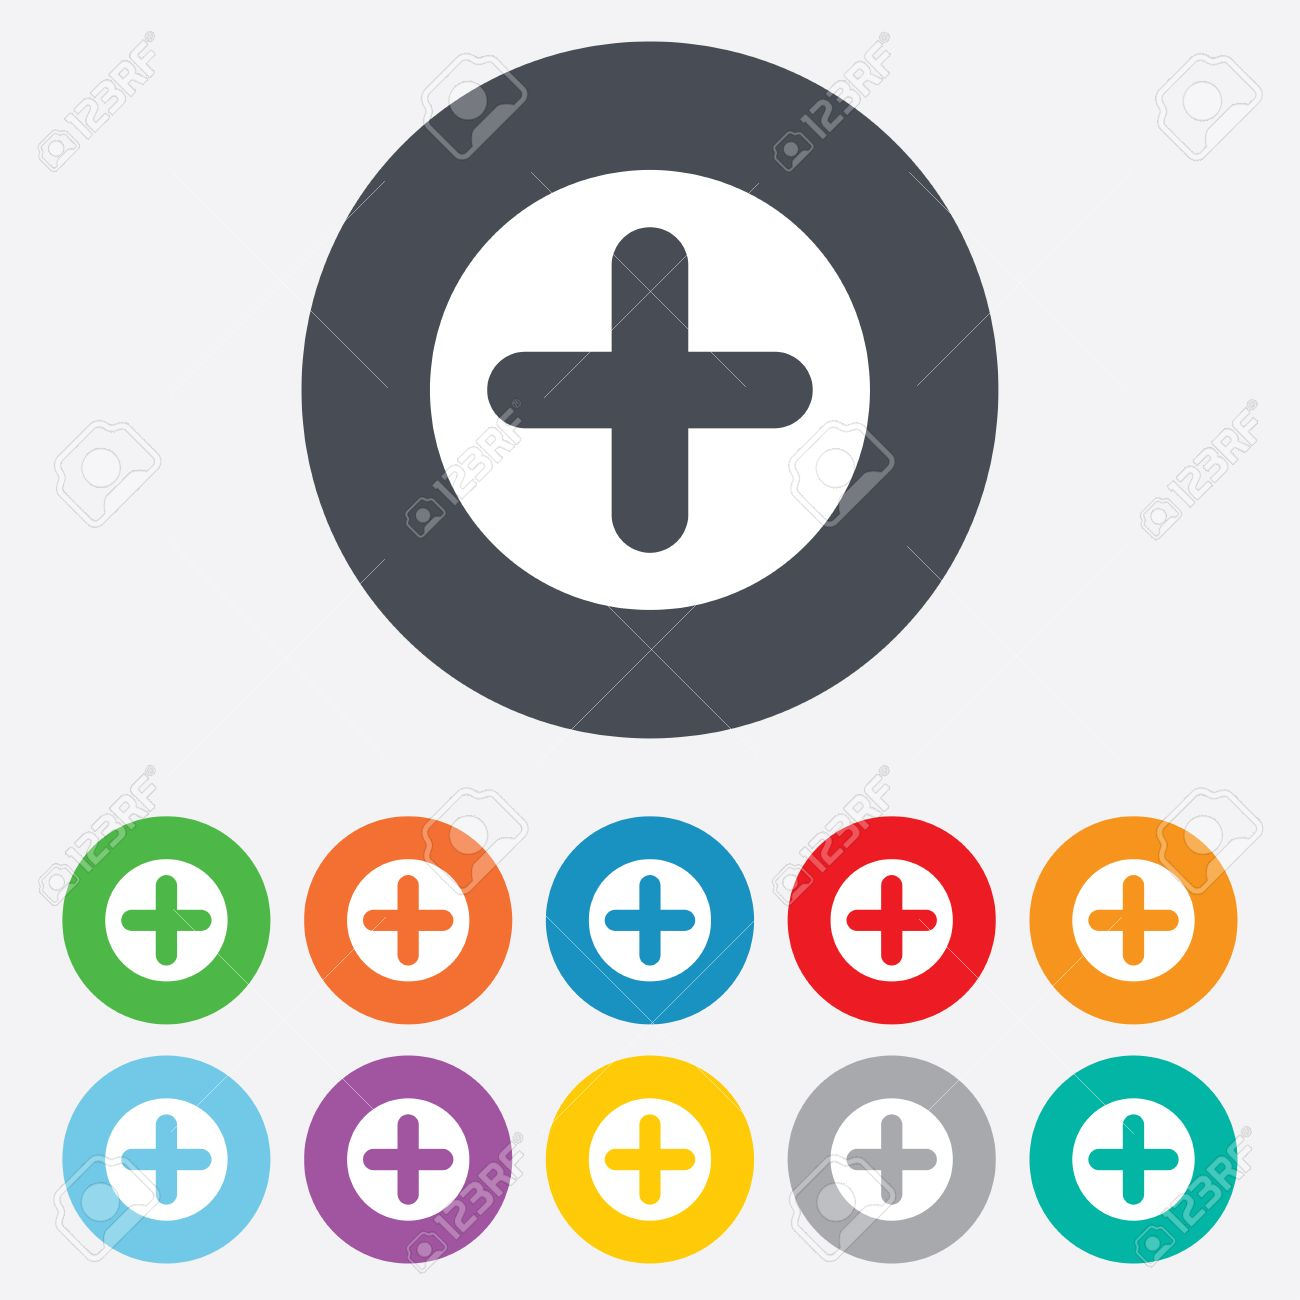 Plus sign icon positive symbol zoom in round colourful 11 plus sign icon positive symbol zoom in round colourful 11 buttons stock biocorpaavc Choice Image